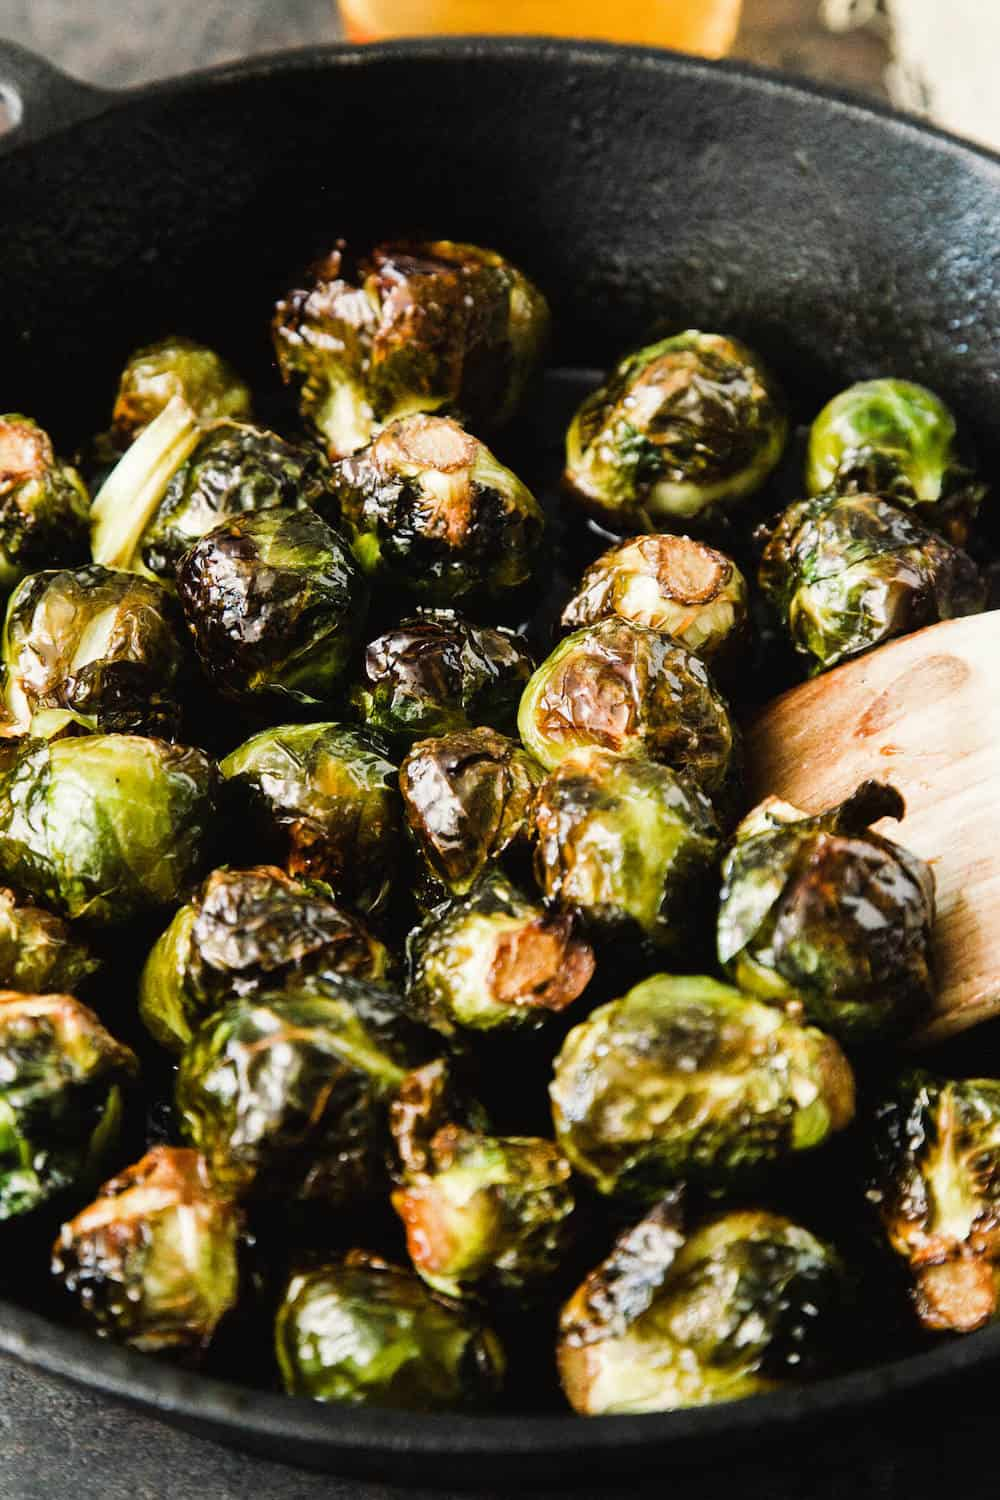 Cider Roasted Caramelized Brussel Sprouts